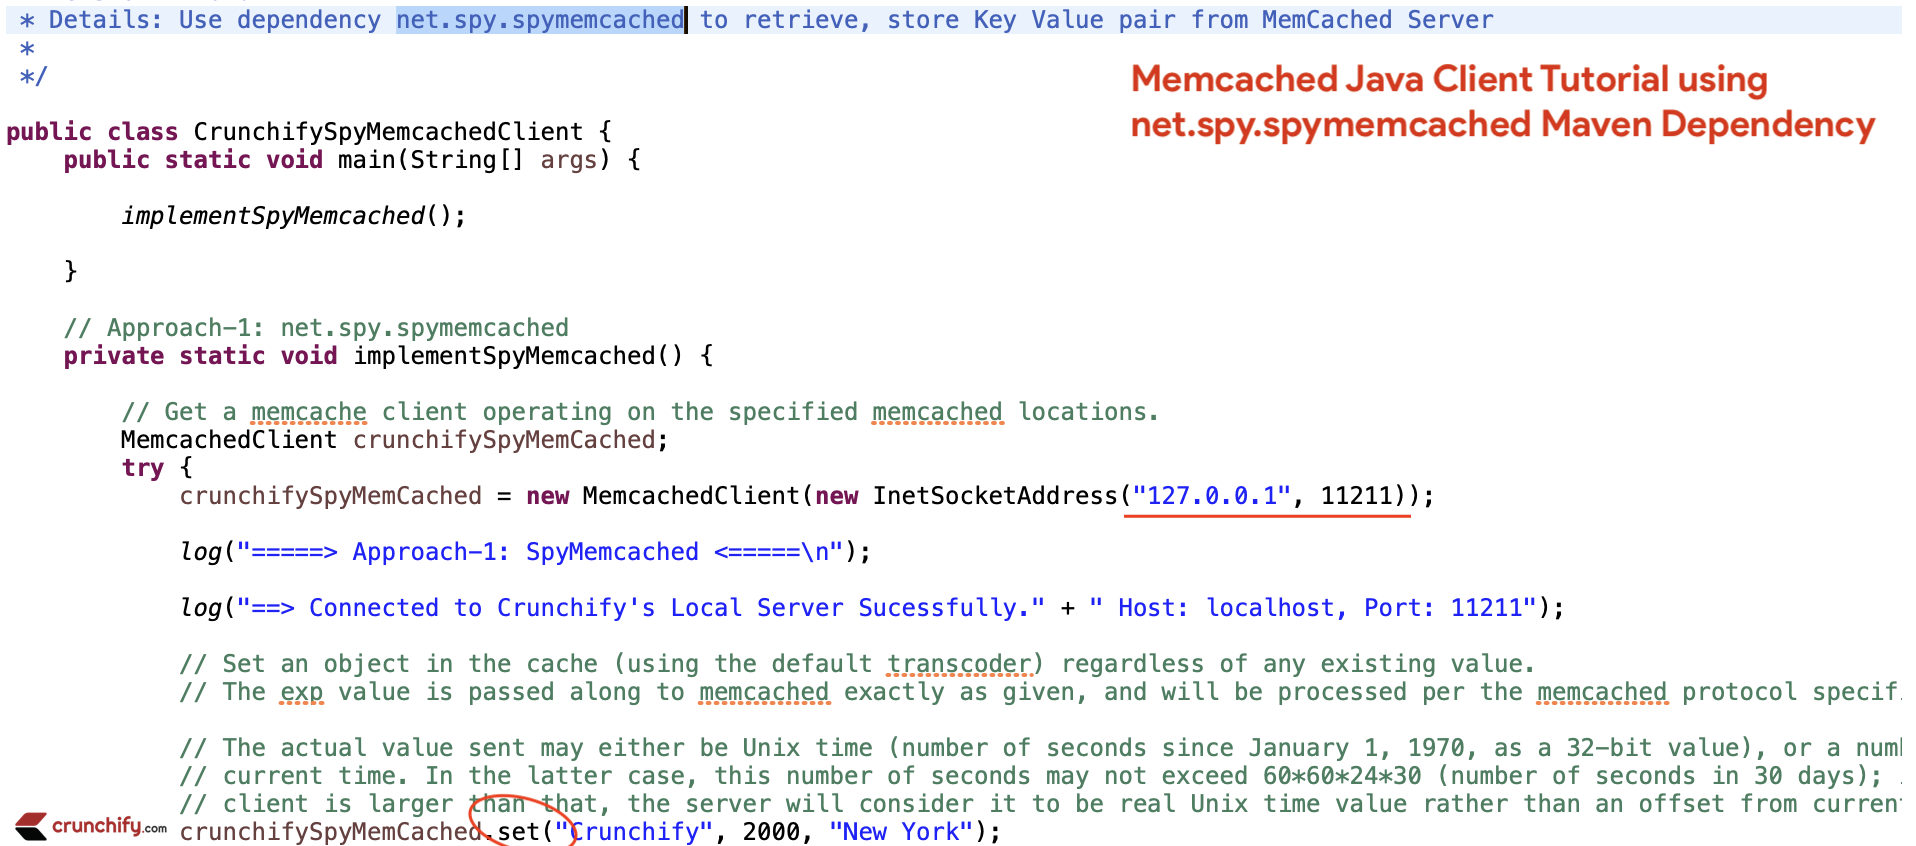 Memcached Java Client Tutorial using net.spy.spymemcached Maven